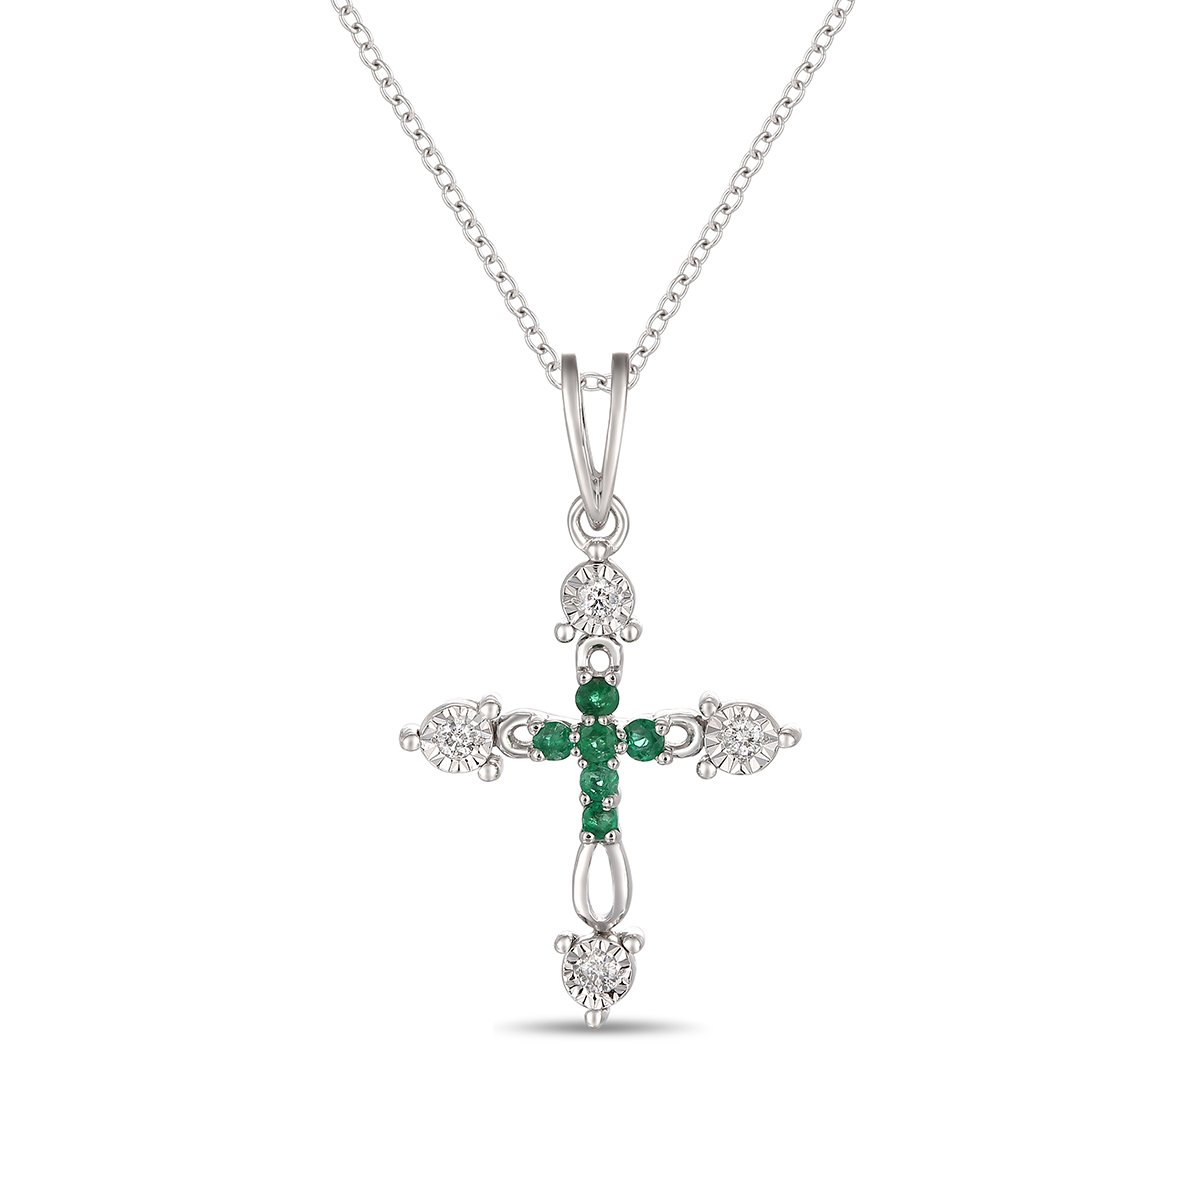 Ferhe New York Mother's Day Gift, 14K Gold Almighty Cross Pendant with Diamond & Emerald,Diamond Almighty Cross Pendant, Emerald Almighty Cross Pendant,Pendant Only- NO Chain